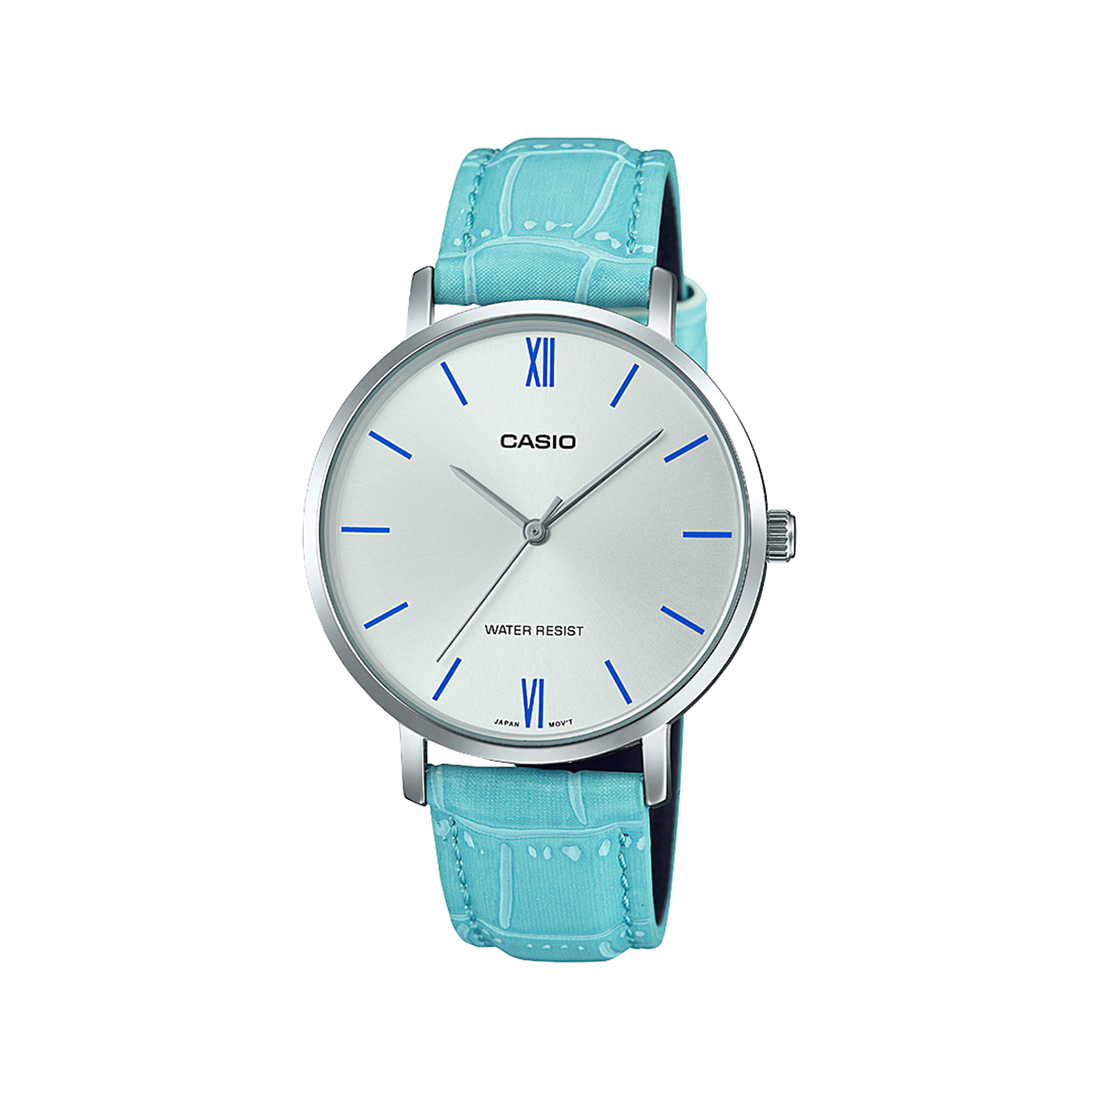 a1631 ltp-vt01l-7b3udf enticer ladies watch-A1631